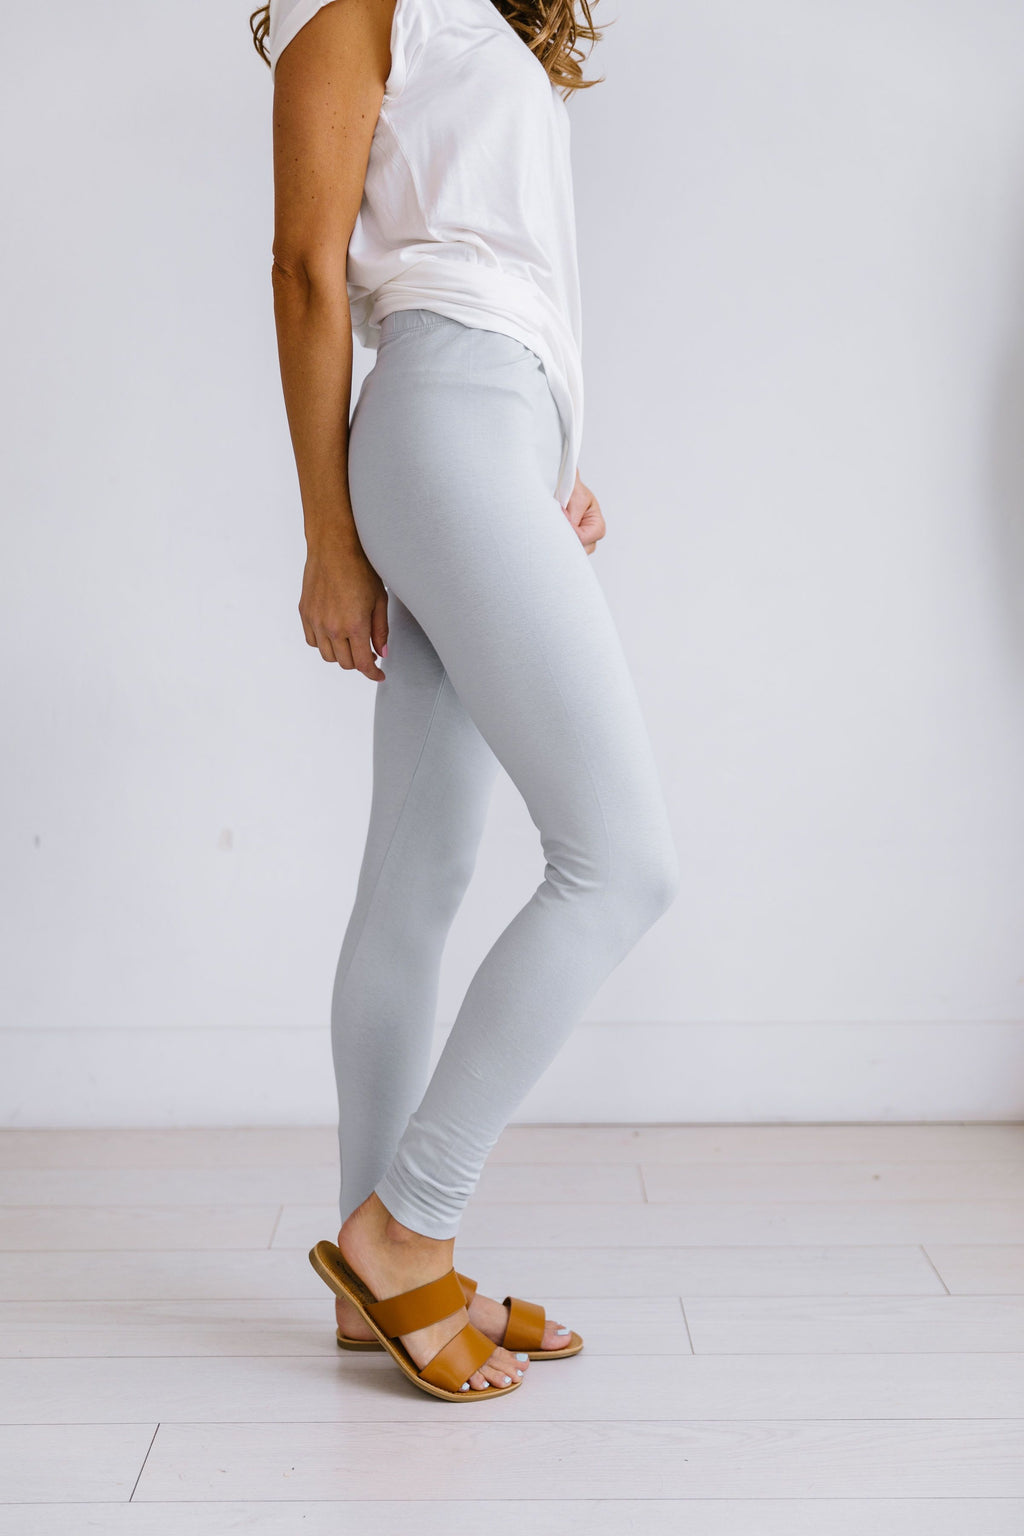 High Waist Leggings In Gray